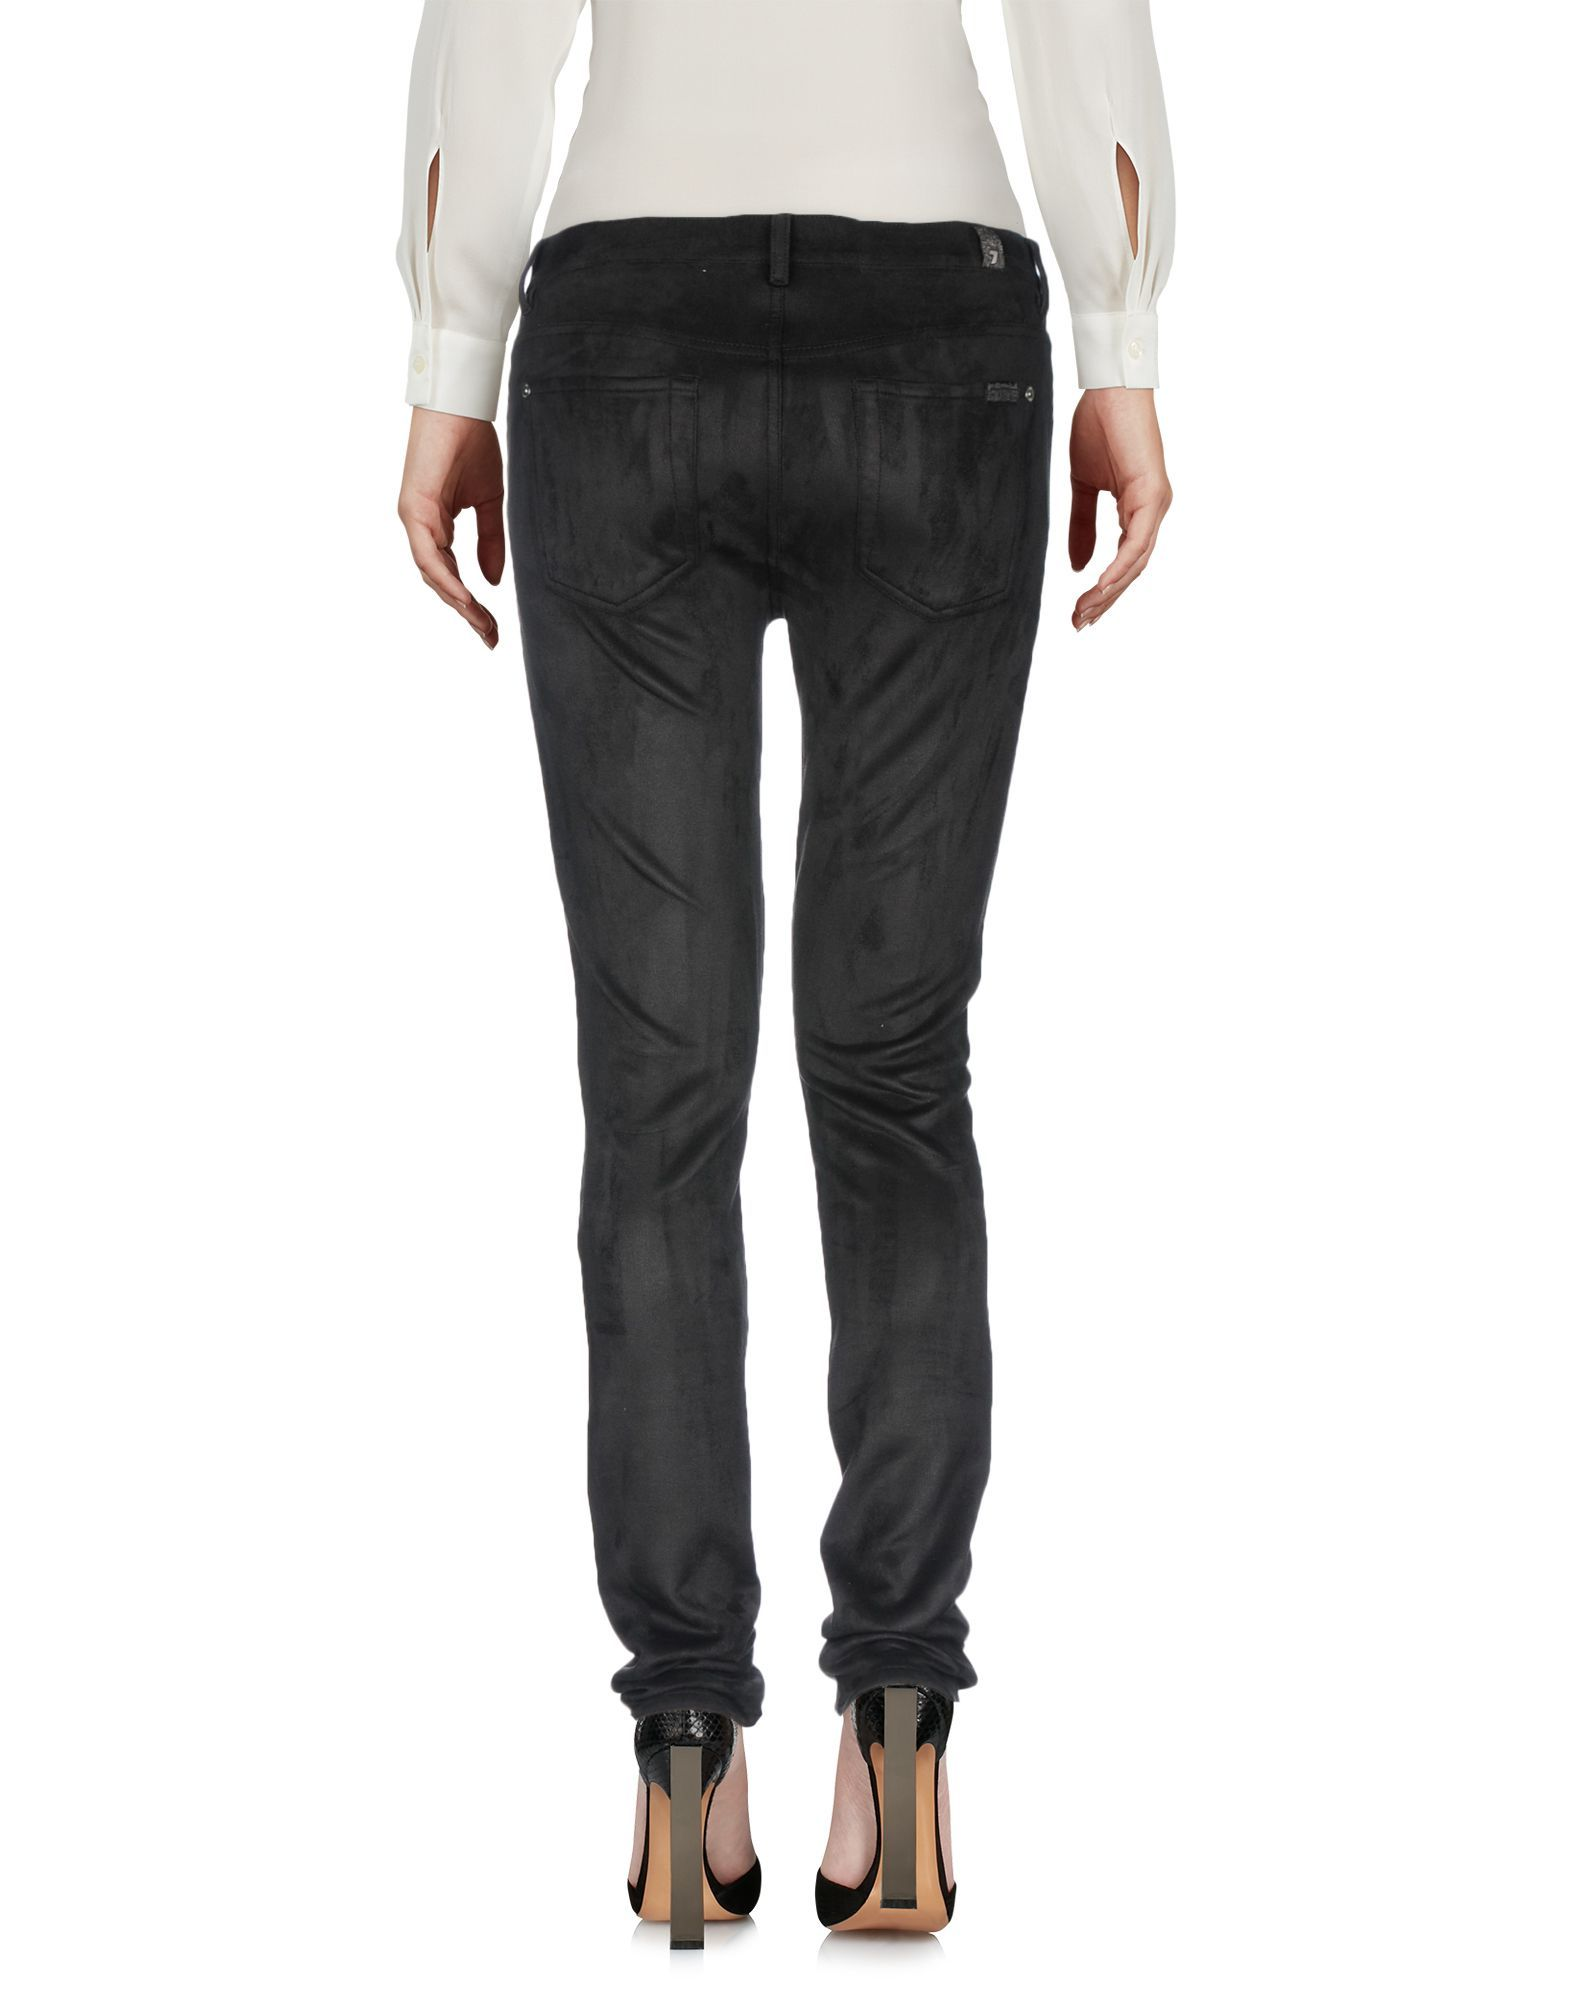 7 For All Mankind Black Slim Trousers